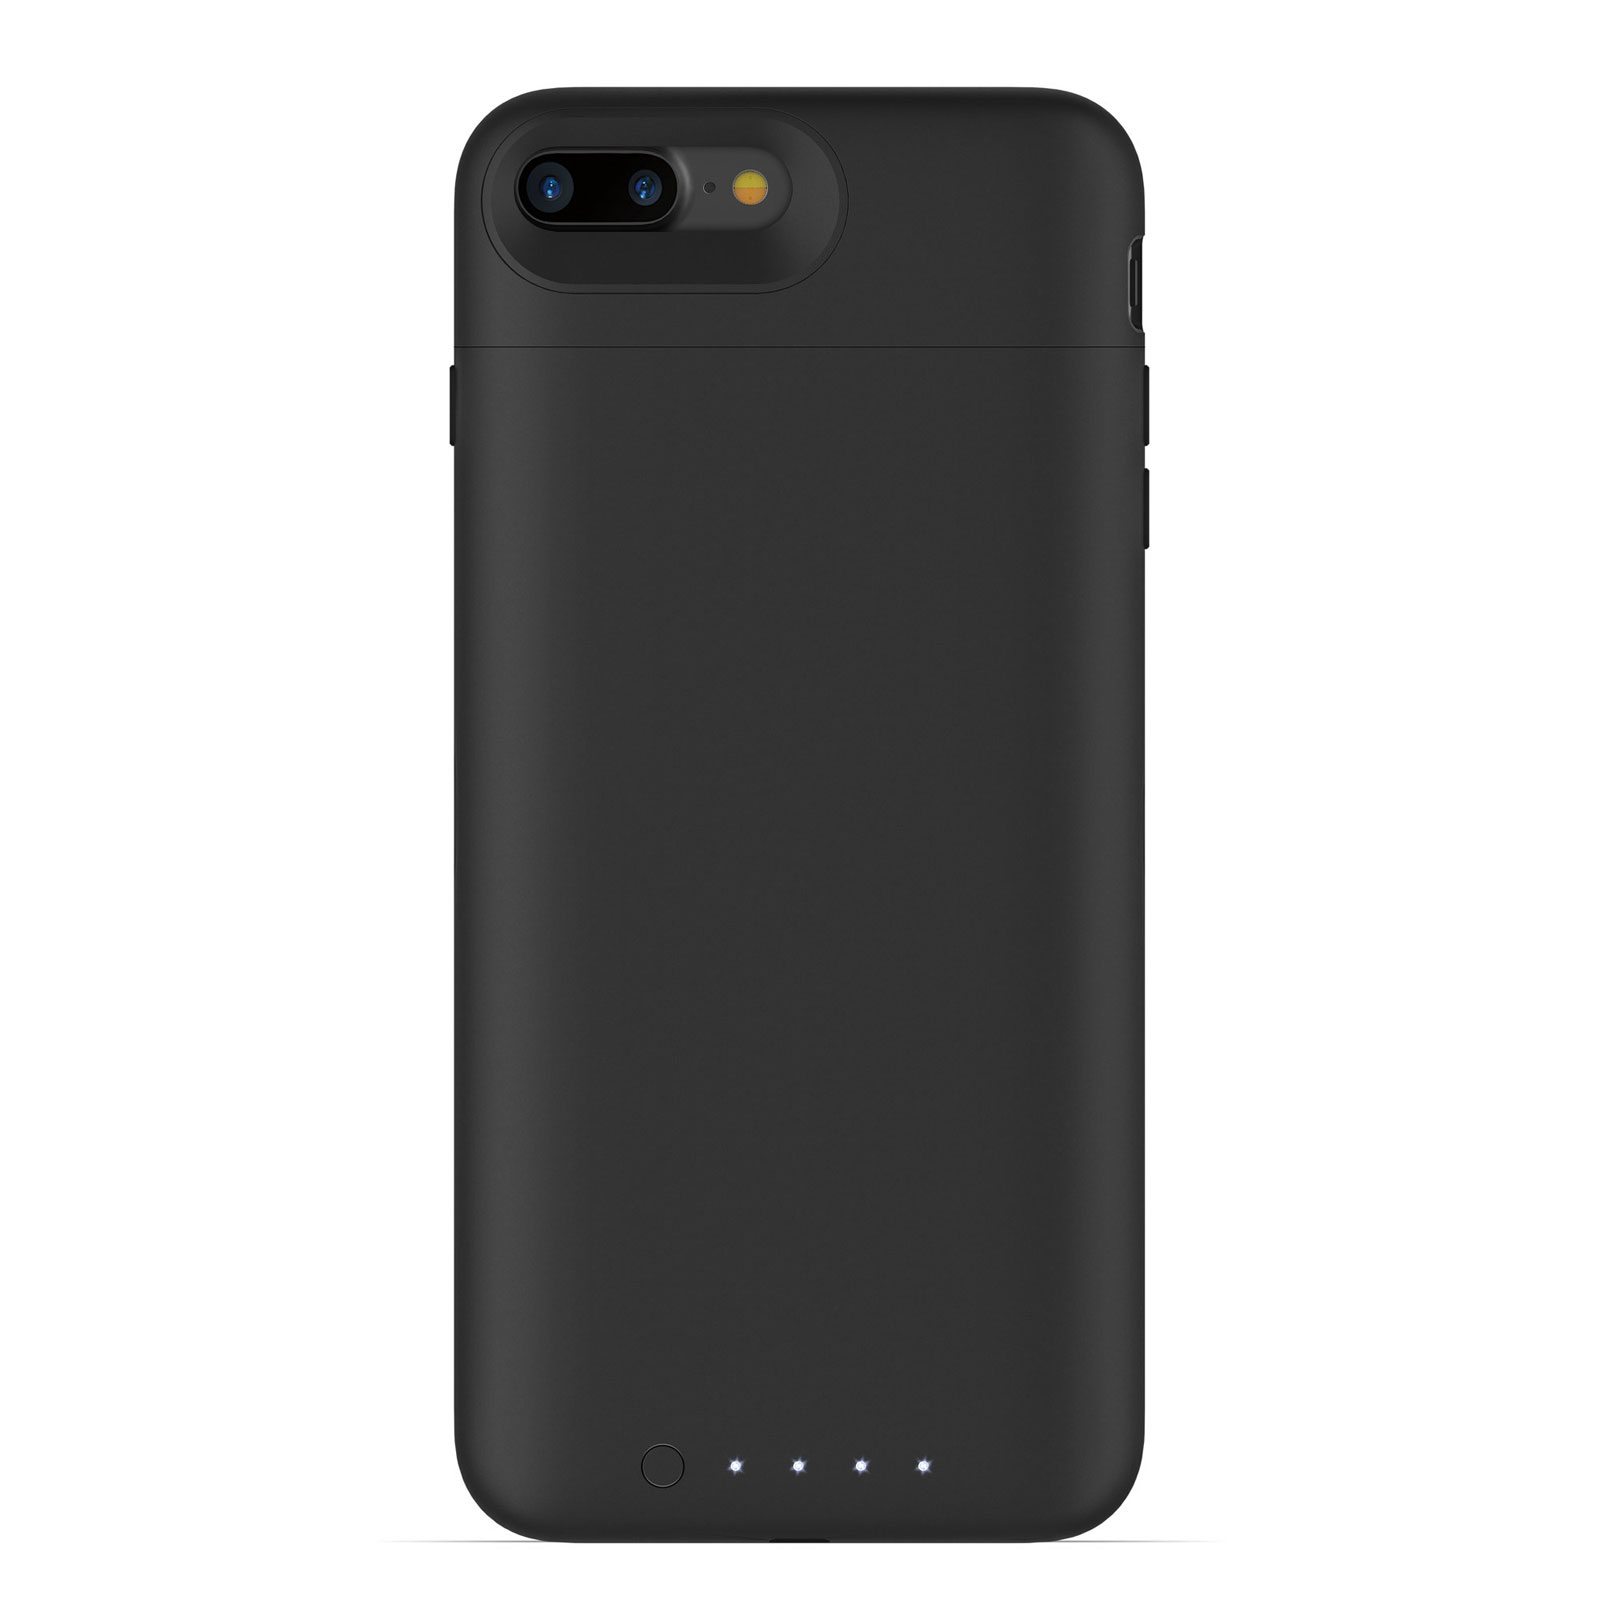 mophie juice pack air noir iphone 7 plus etui t l phone mophie sur. Black Bedroom Furniture Sets. Home Design Ideas